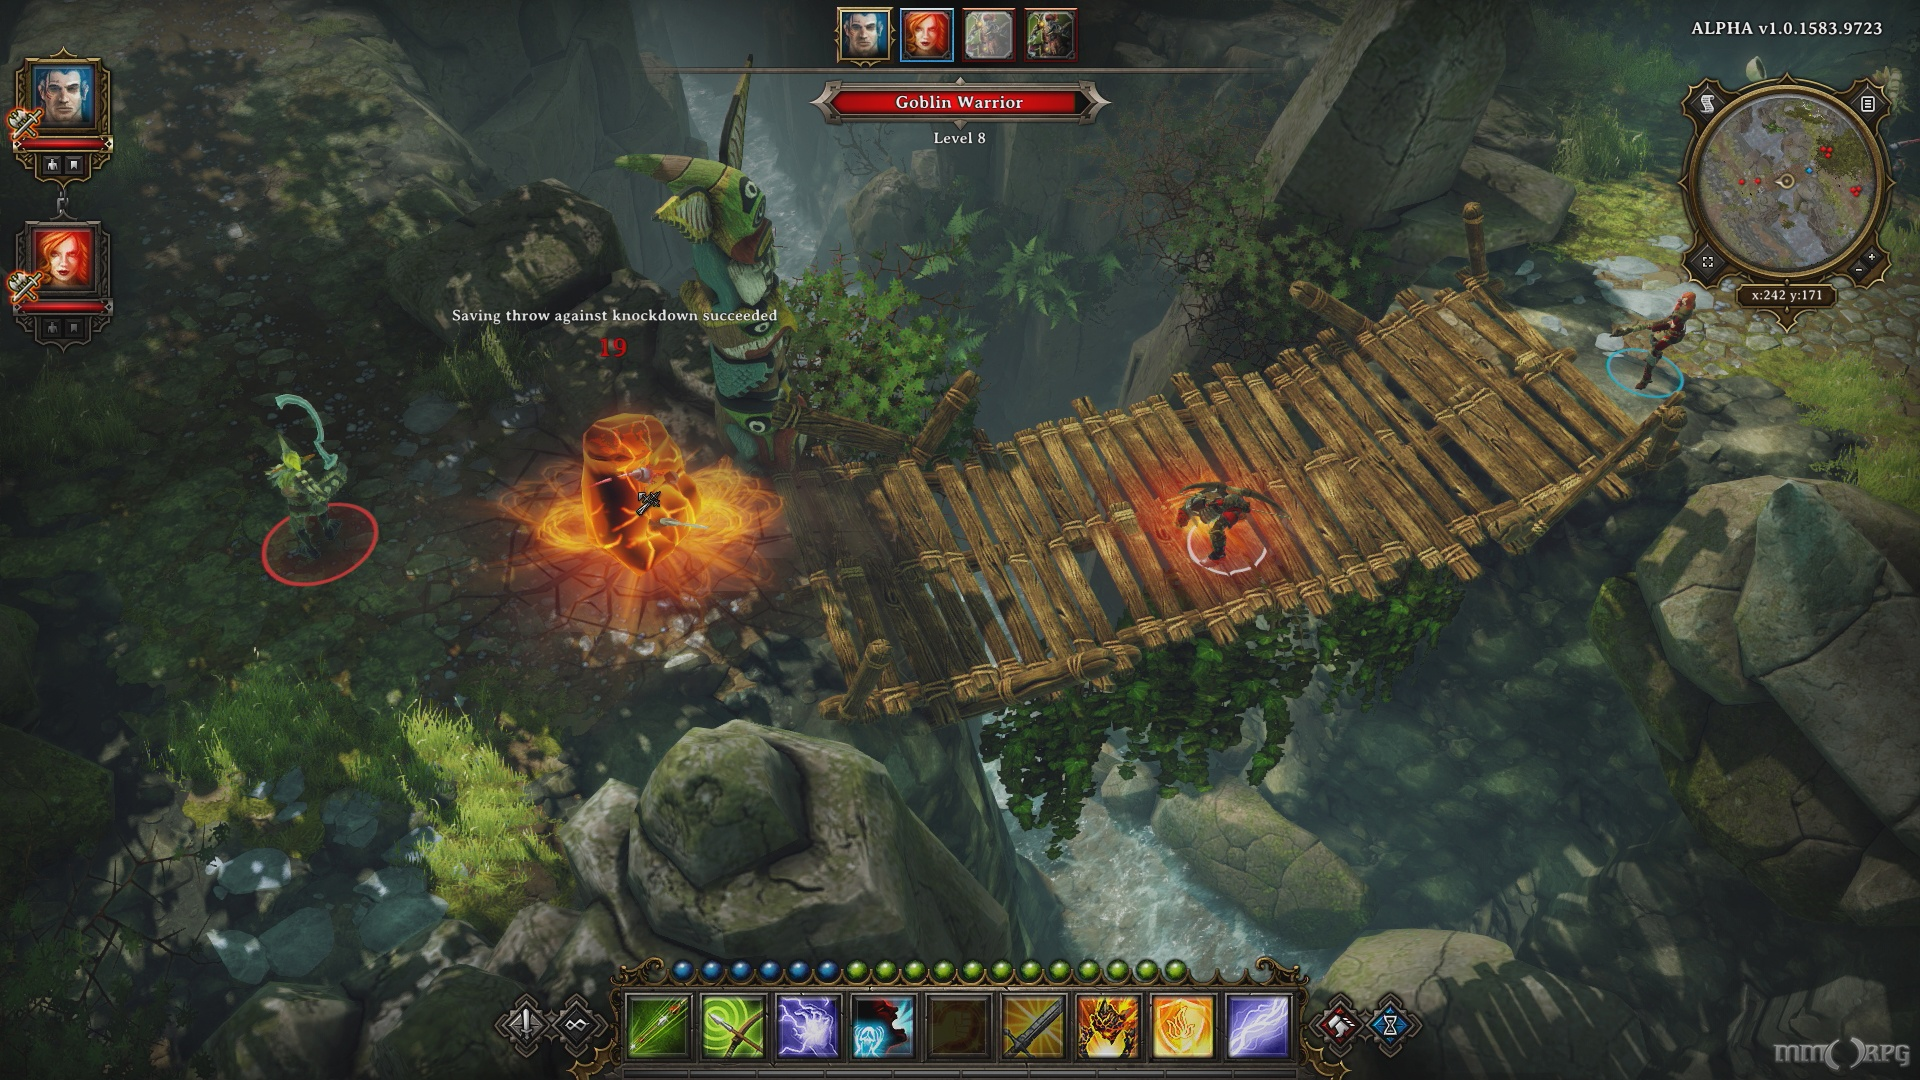 Divinity: Original Sin is the Kickstarter-funded RPG followup to Divine Divinity.